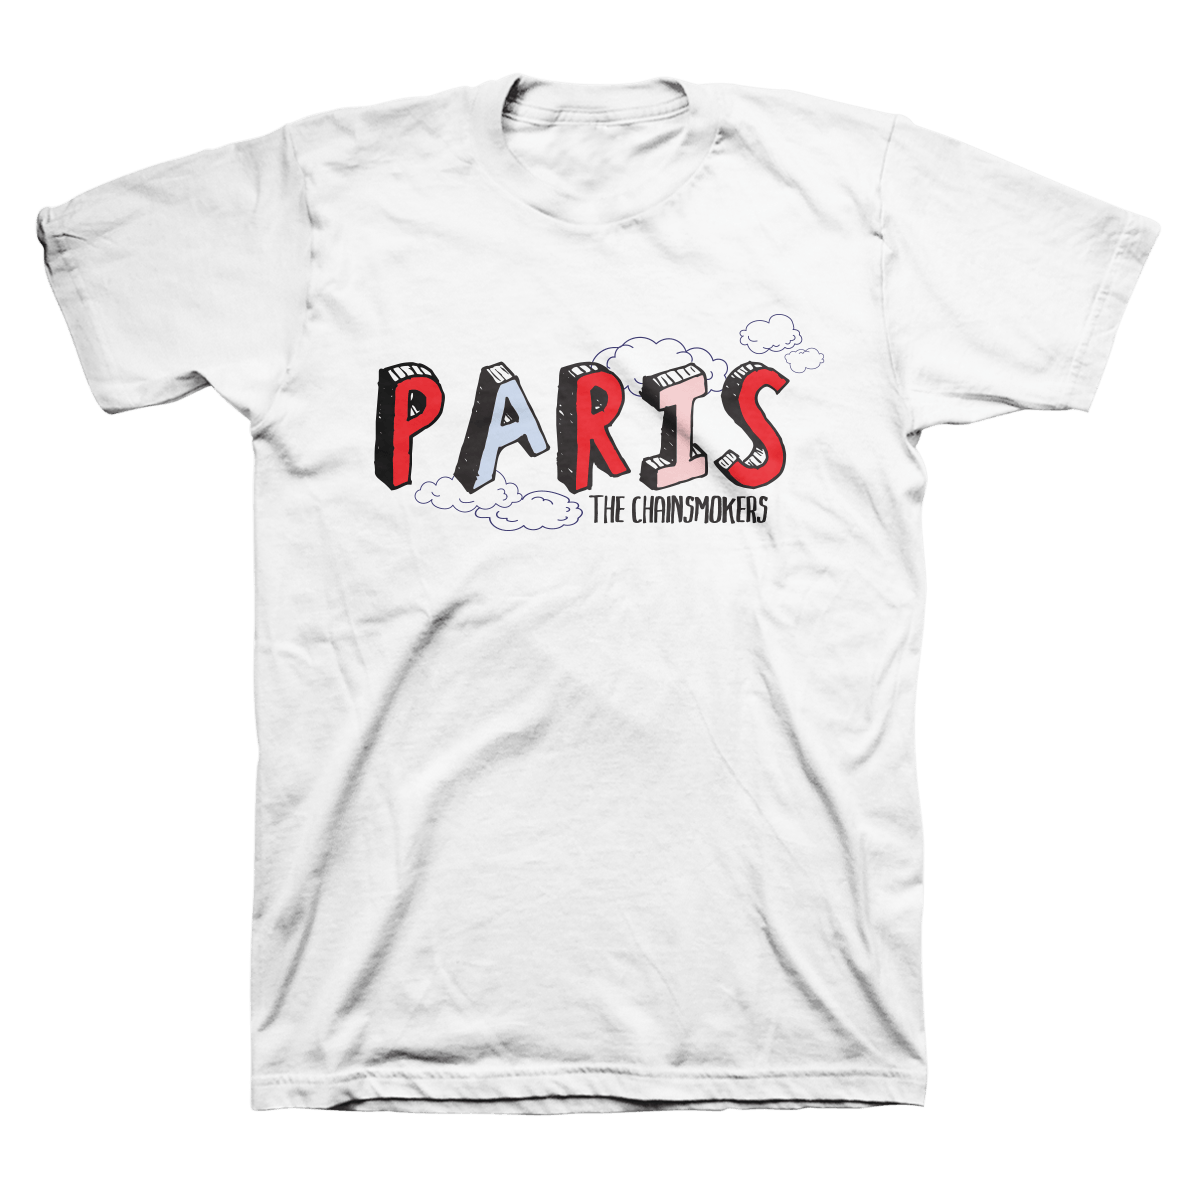 Paris Tee - The Chainsmokers